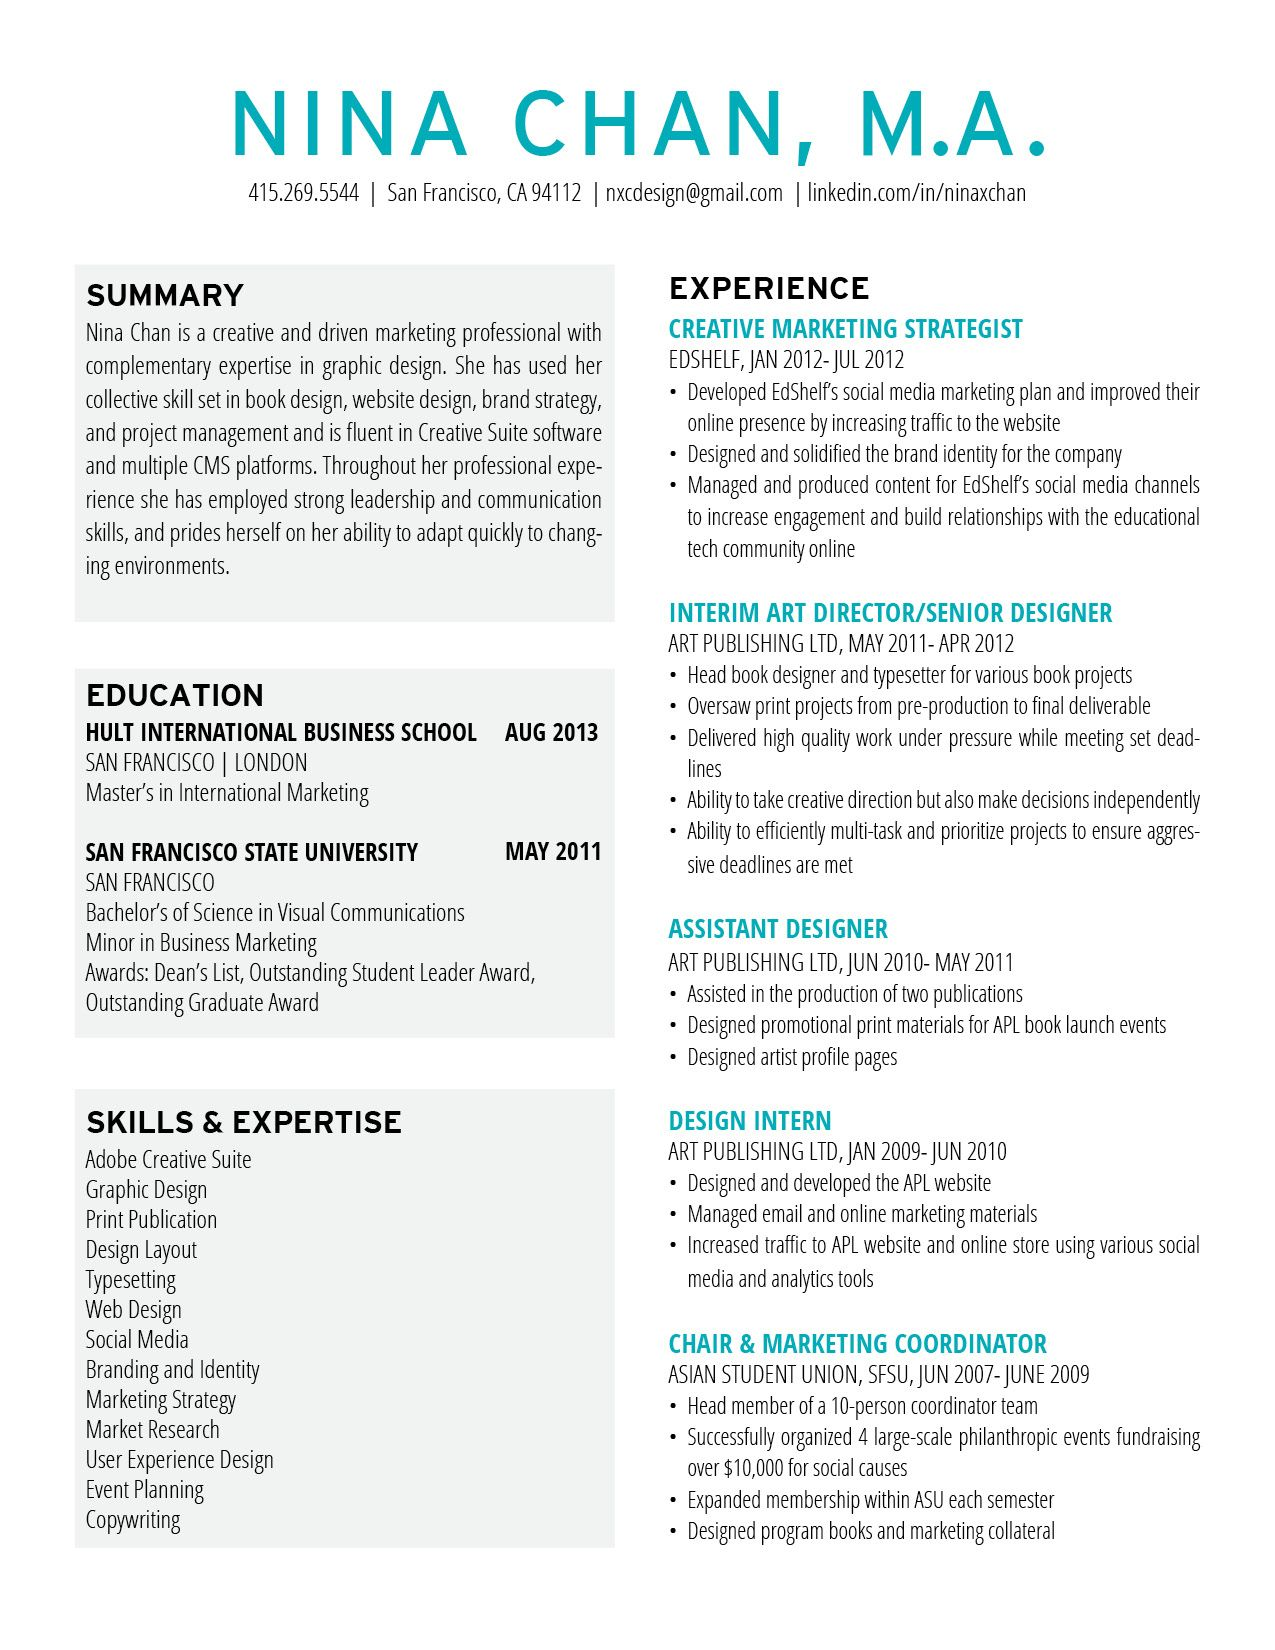 Resume Indesign Ninachan Resume Design Marketing Resume Resumedesign